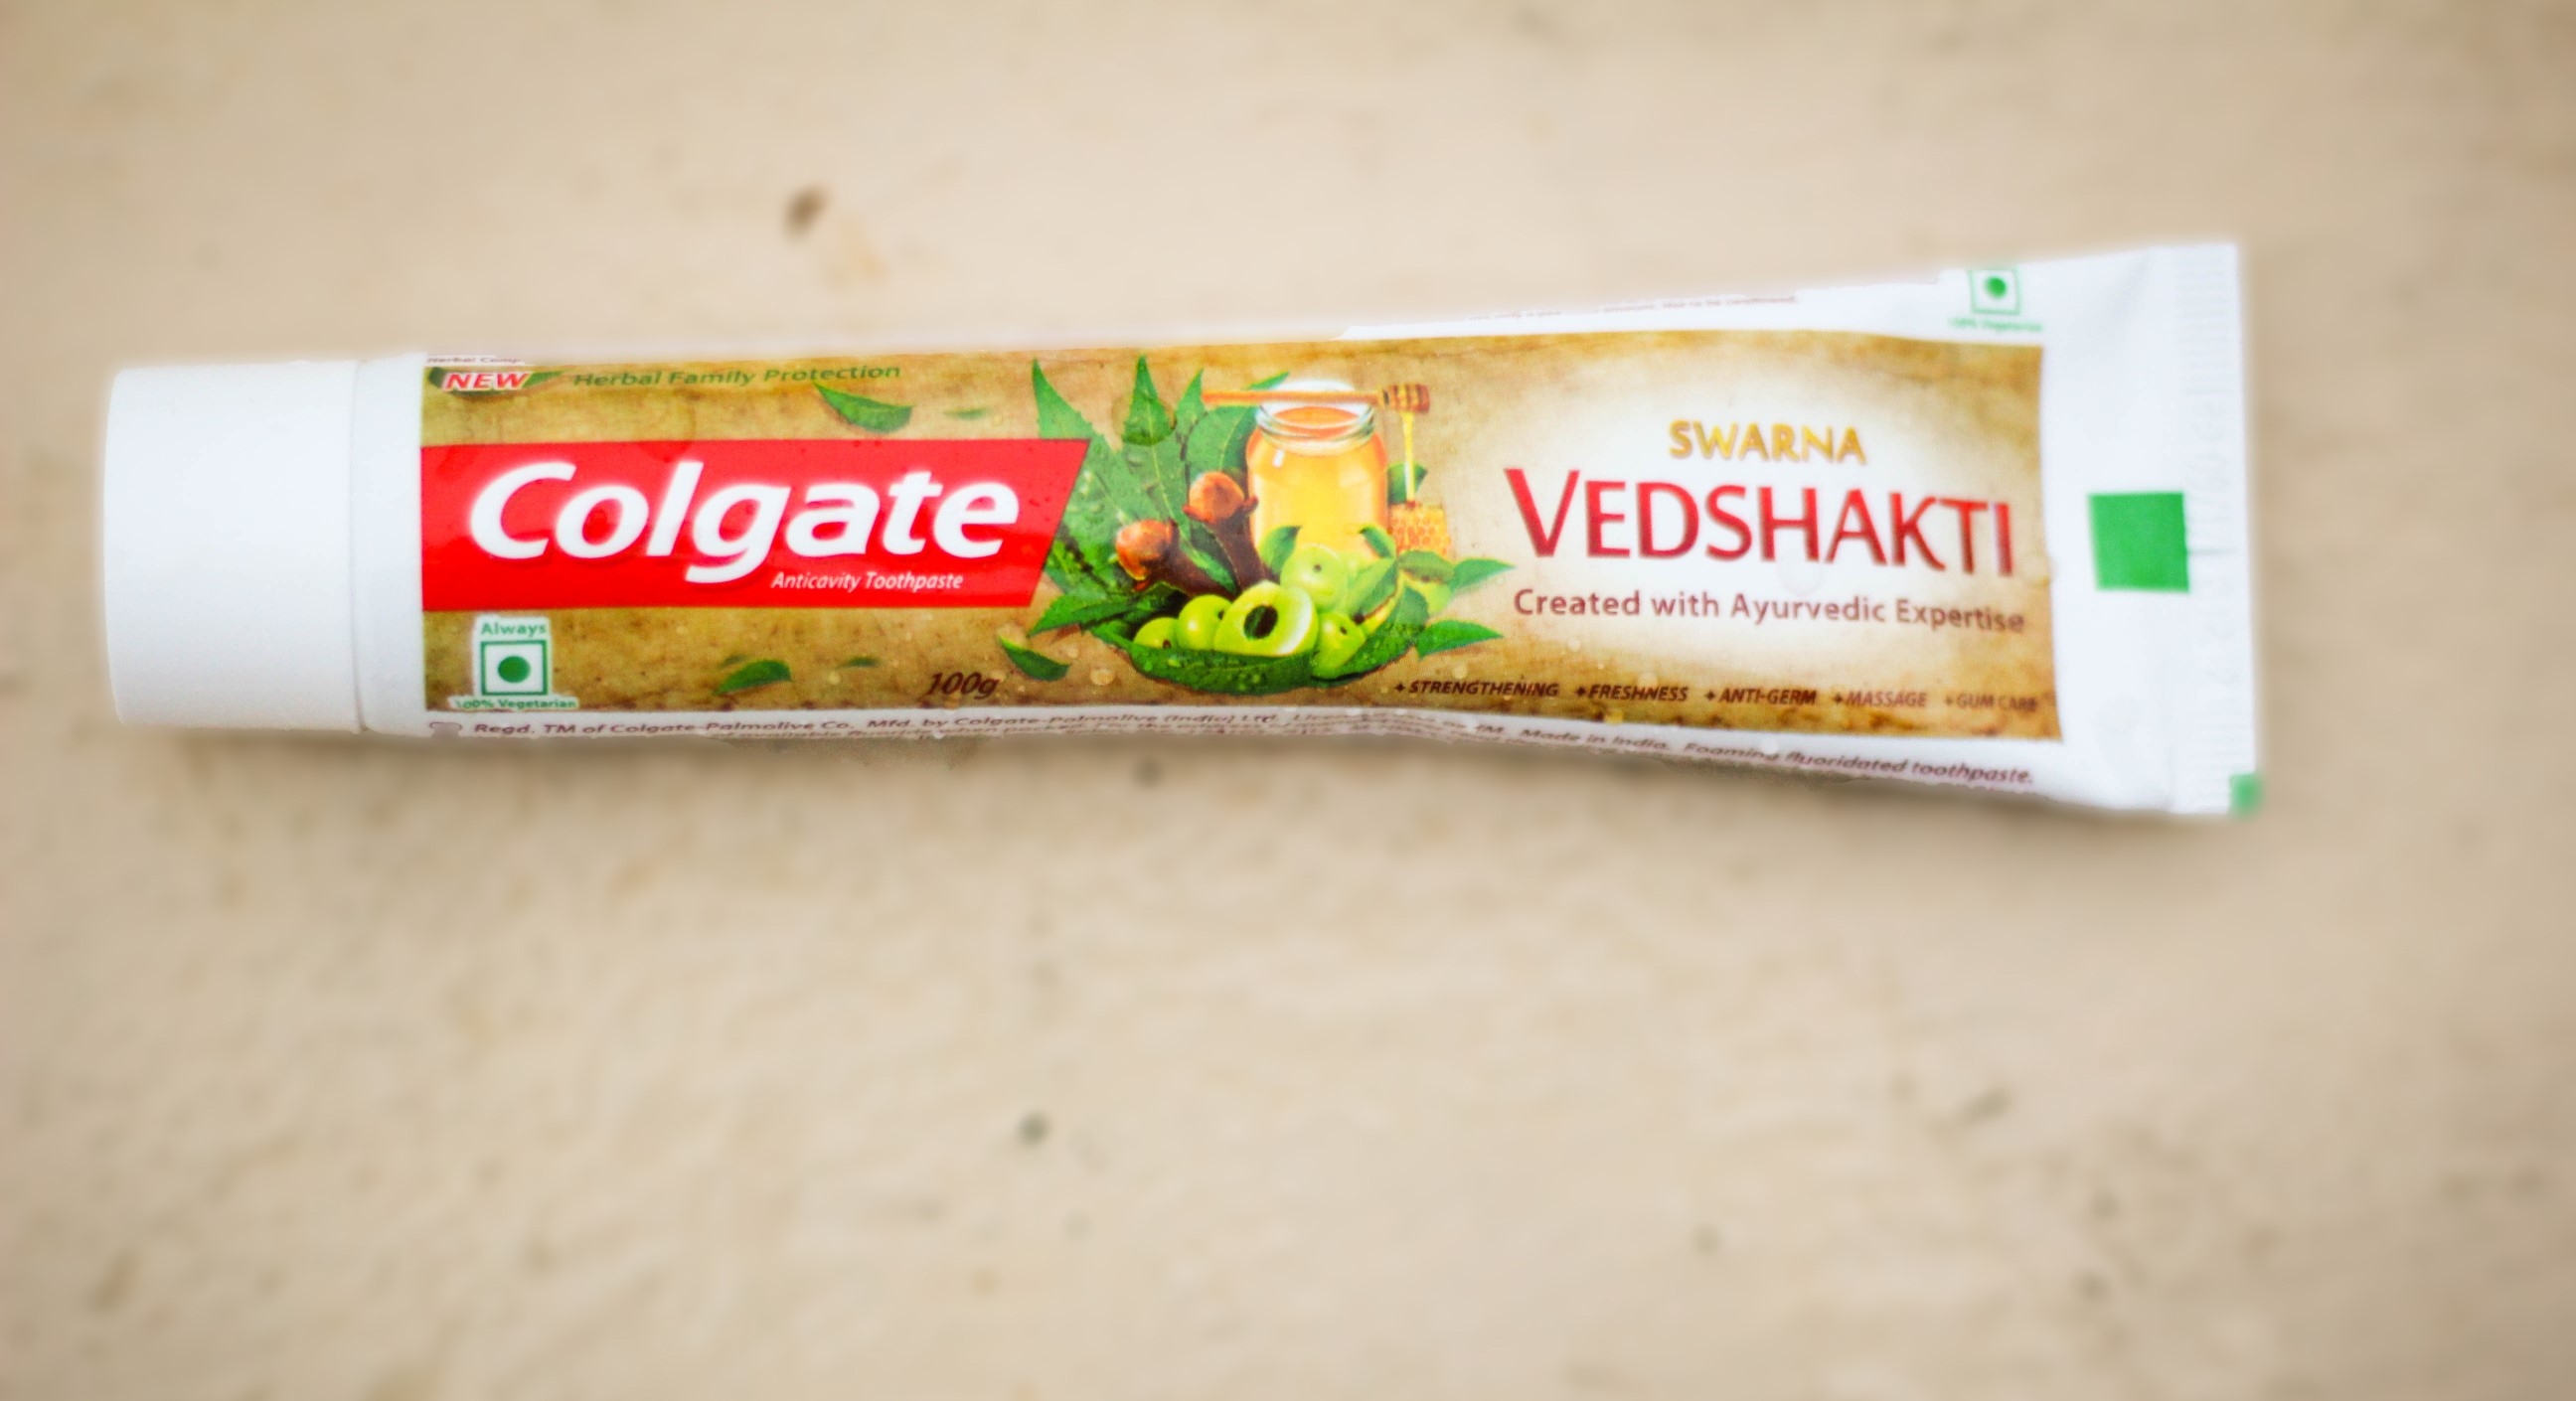 Colgate Swarna Vedshakti Review, Price and Availability